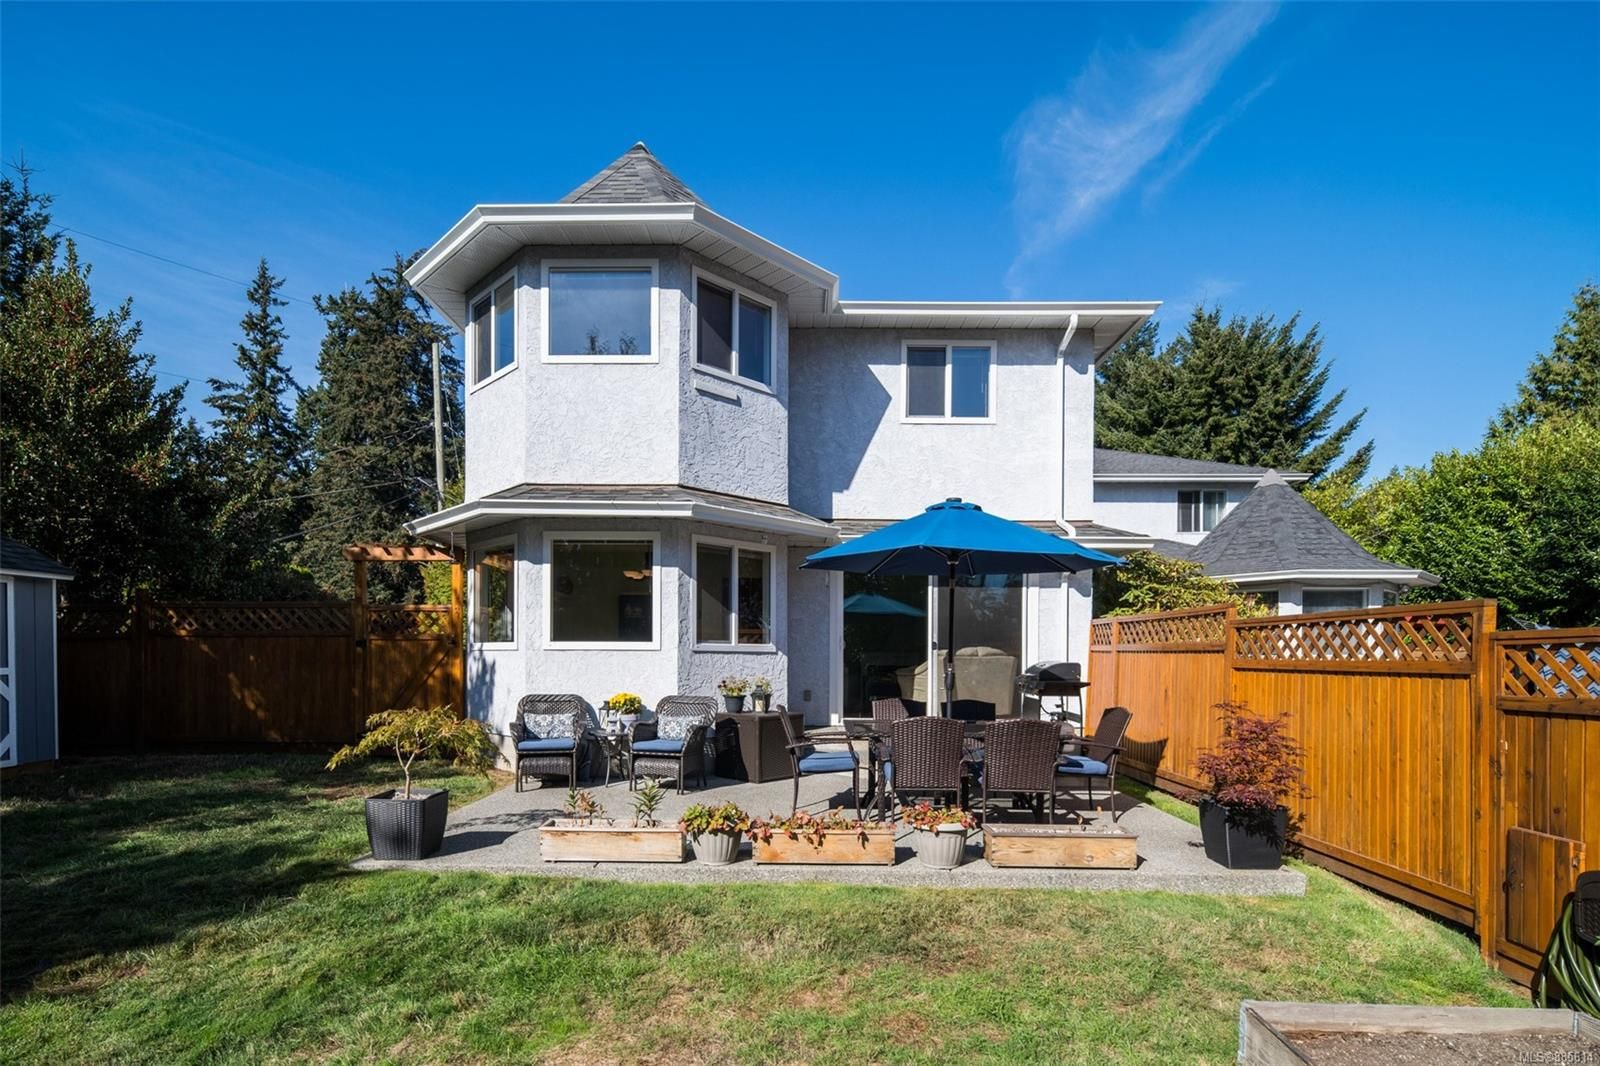 Main Photo: 2743 Whitehead Pl in : Co Colwood Corners Half Duplex for sale (Colwood)  : MLS®# 885614